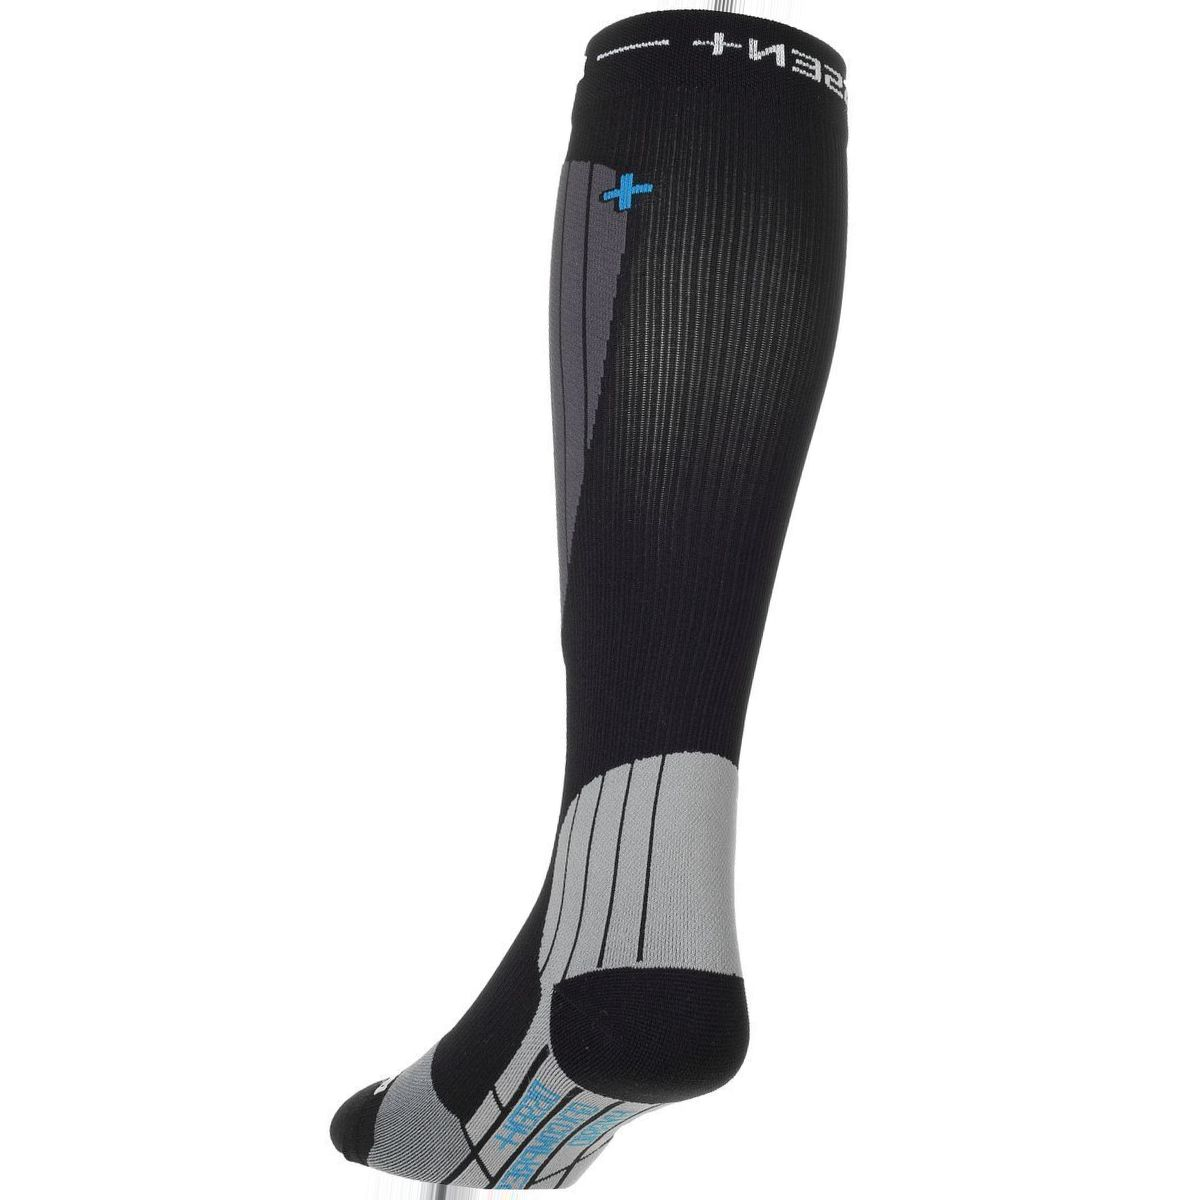 Dissent Ski GFX Compression Hybrid Protect Sock - Men's